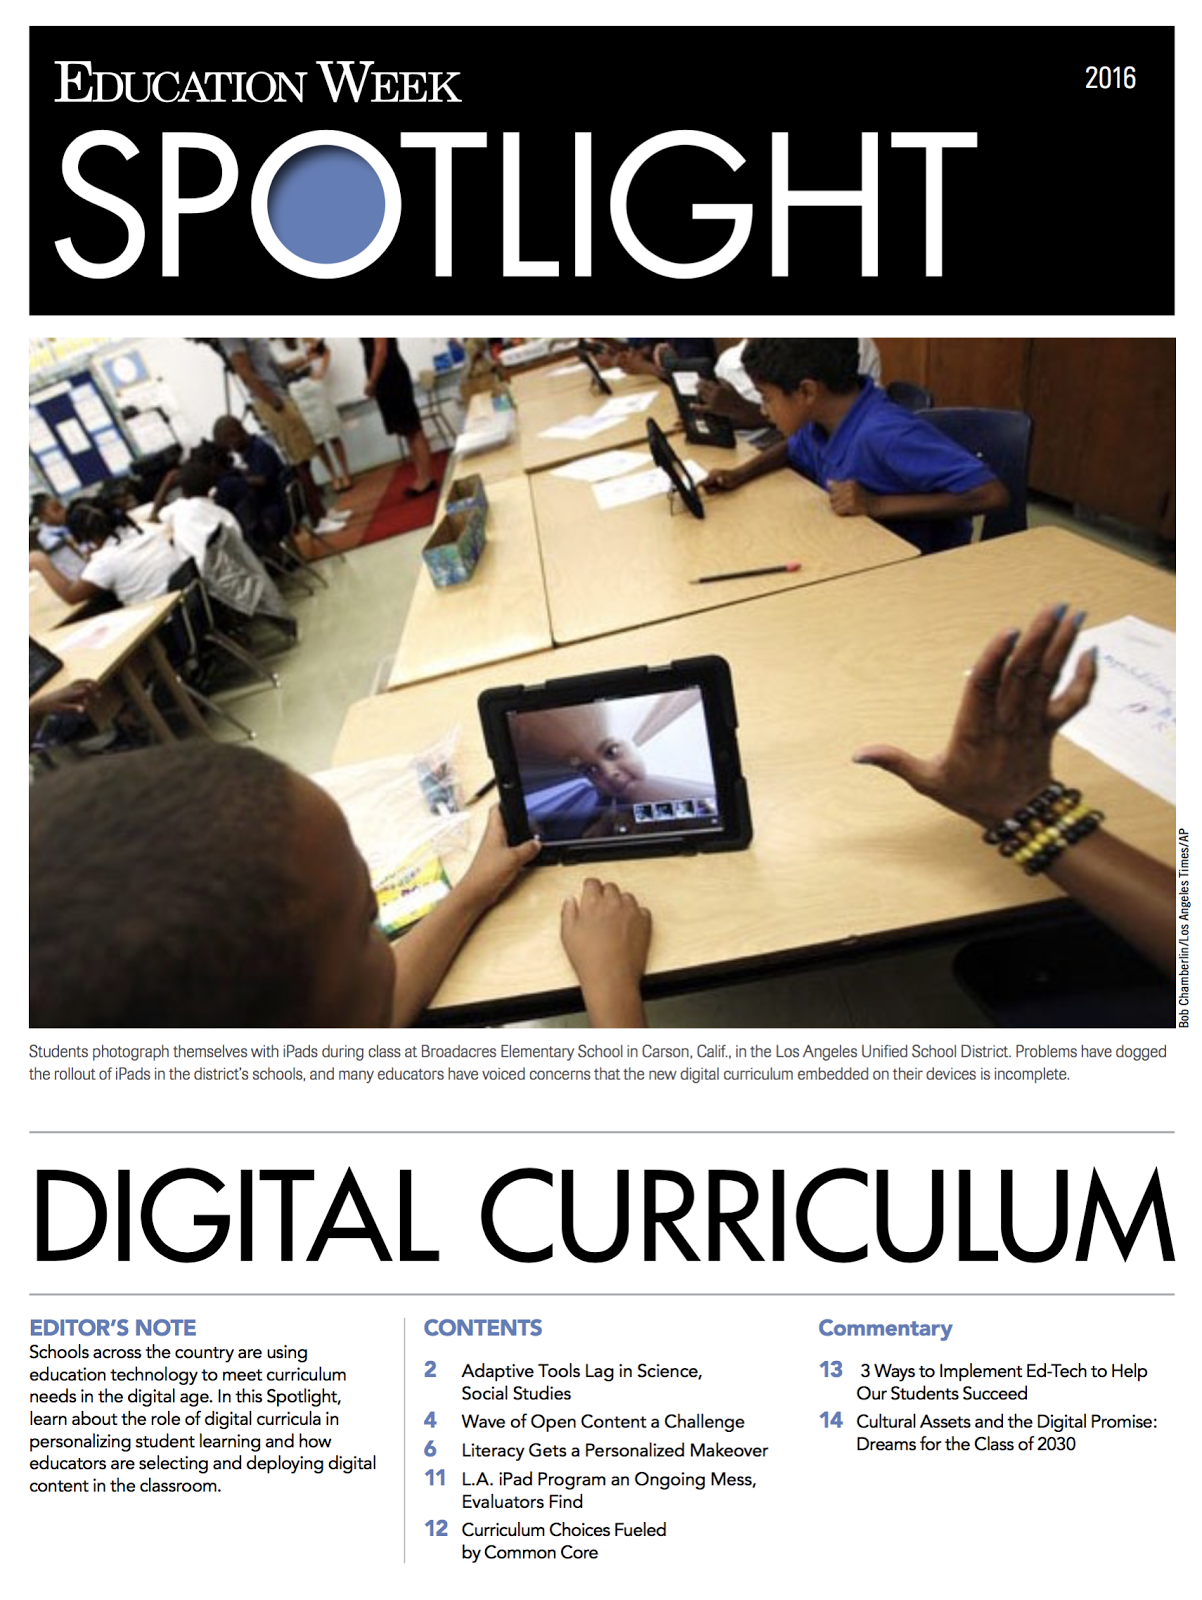 Digital Curriculum Articles